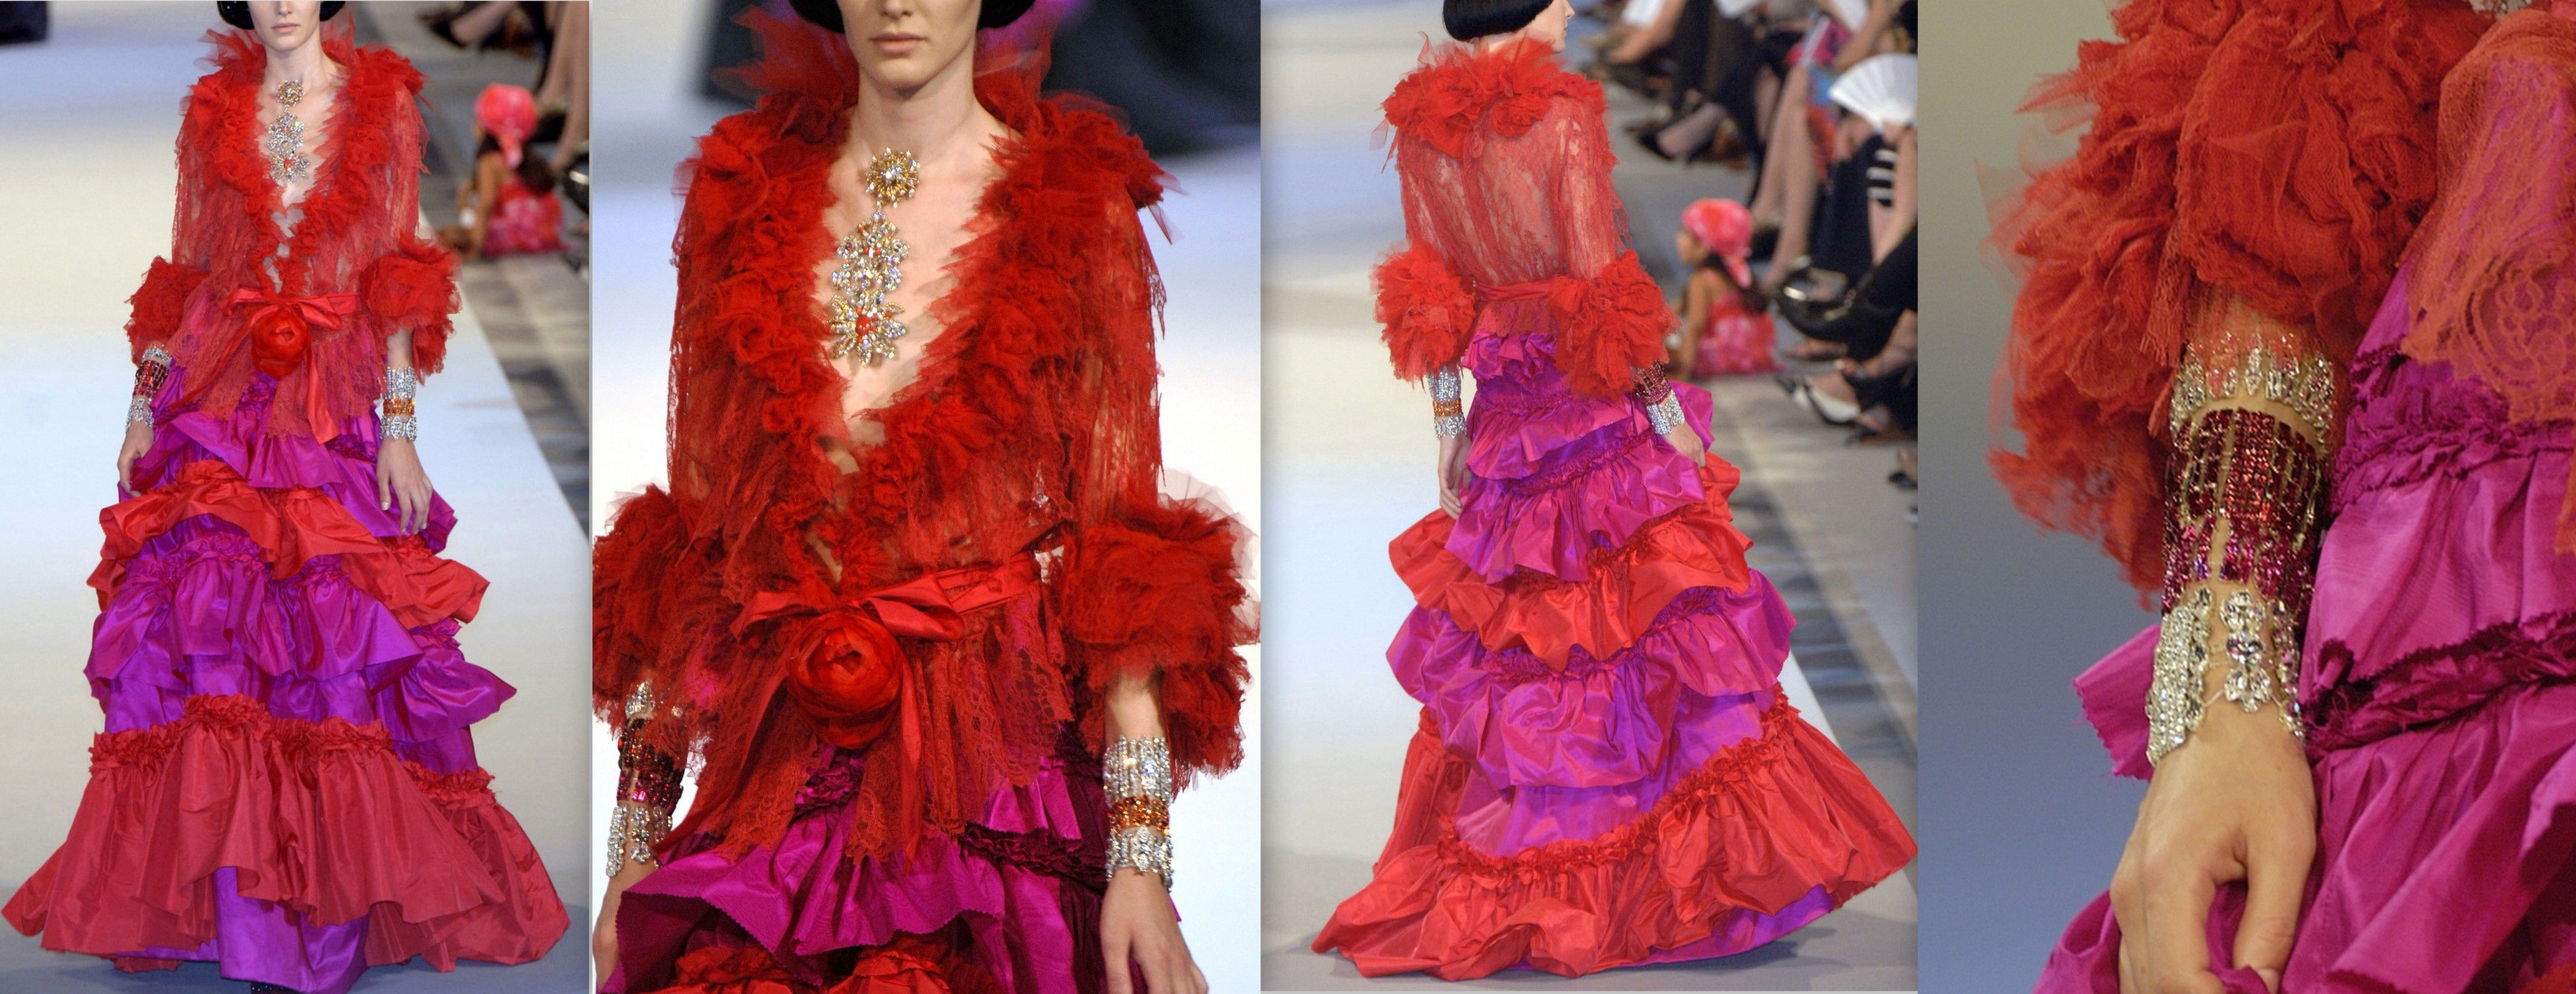 2006 Christian Lacroix - Couture Fall